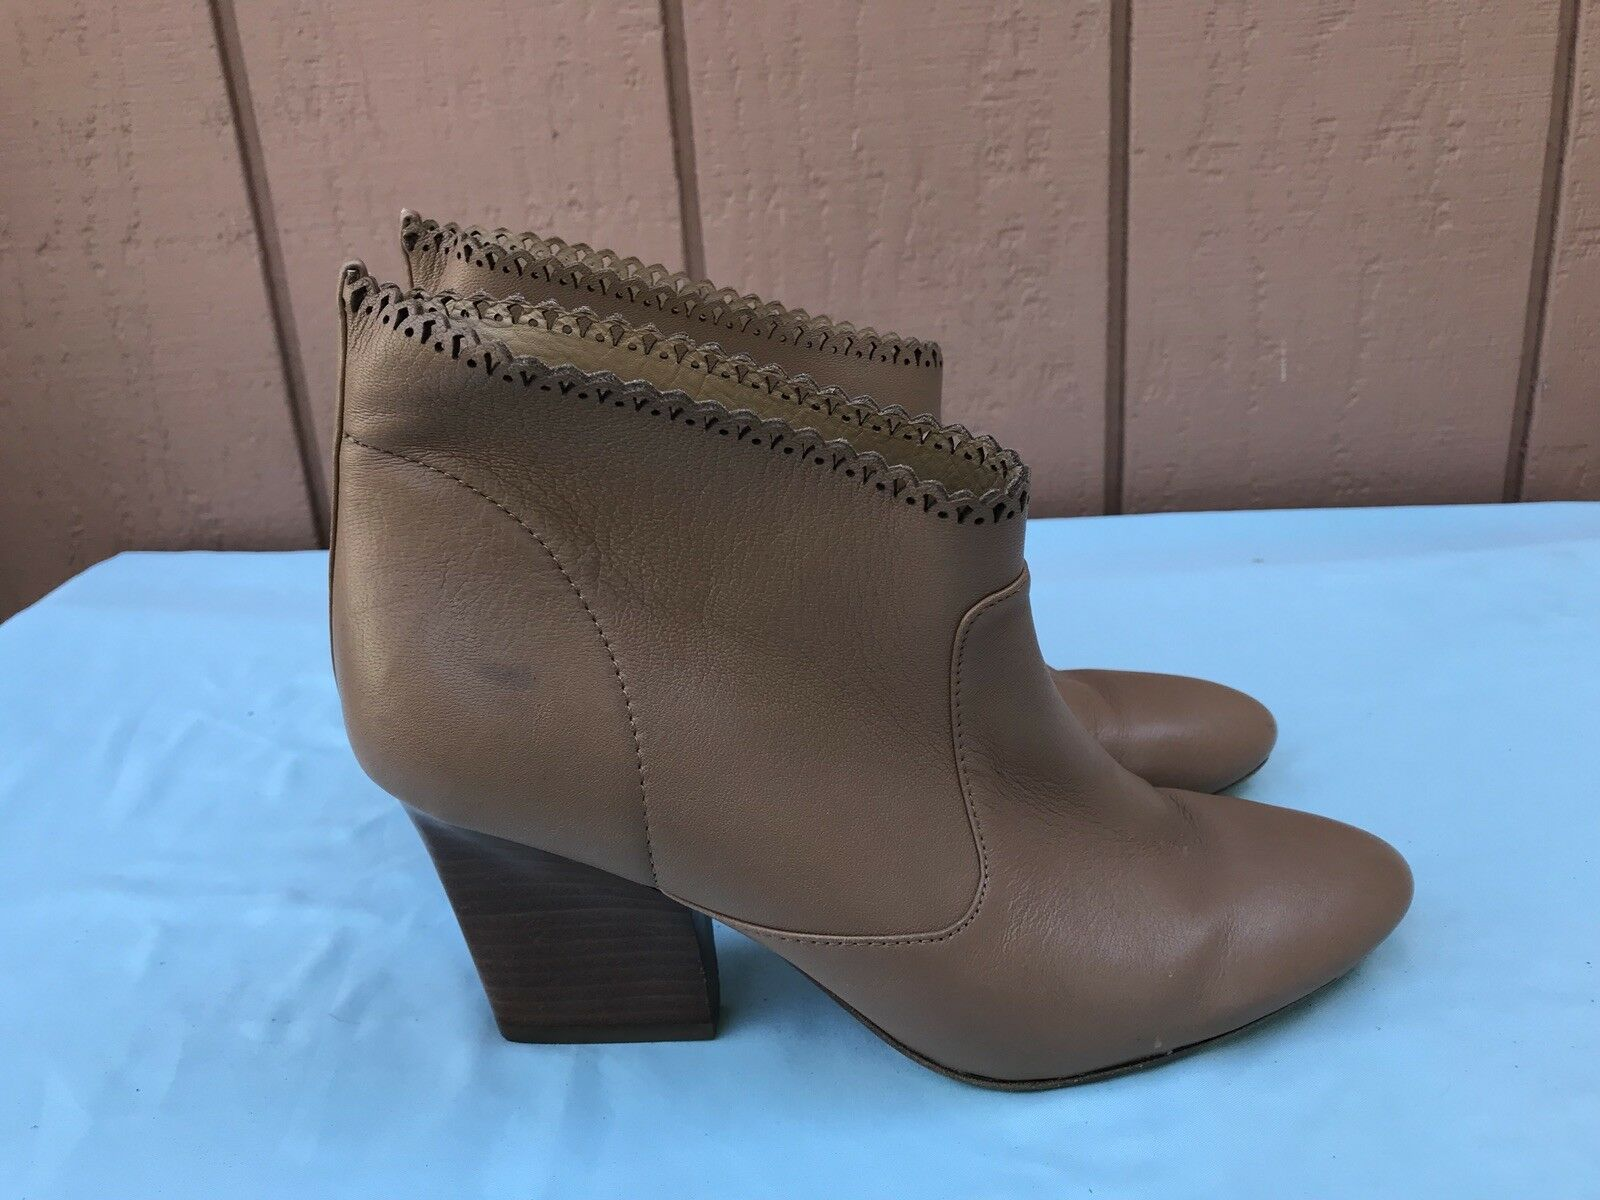 $295 BELLE Sigerson Morrison Nicki BOOTIES Women's US 8B Leather Boots A9